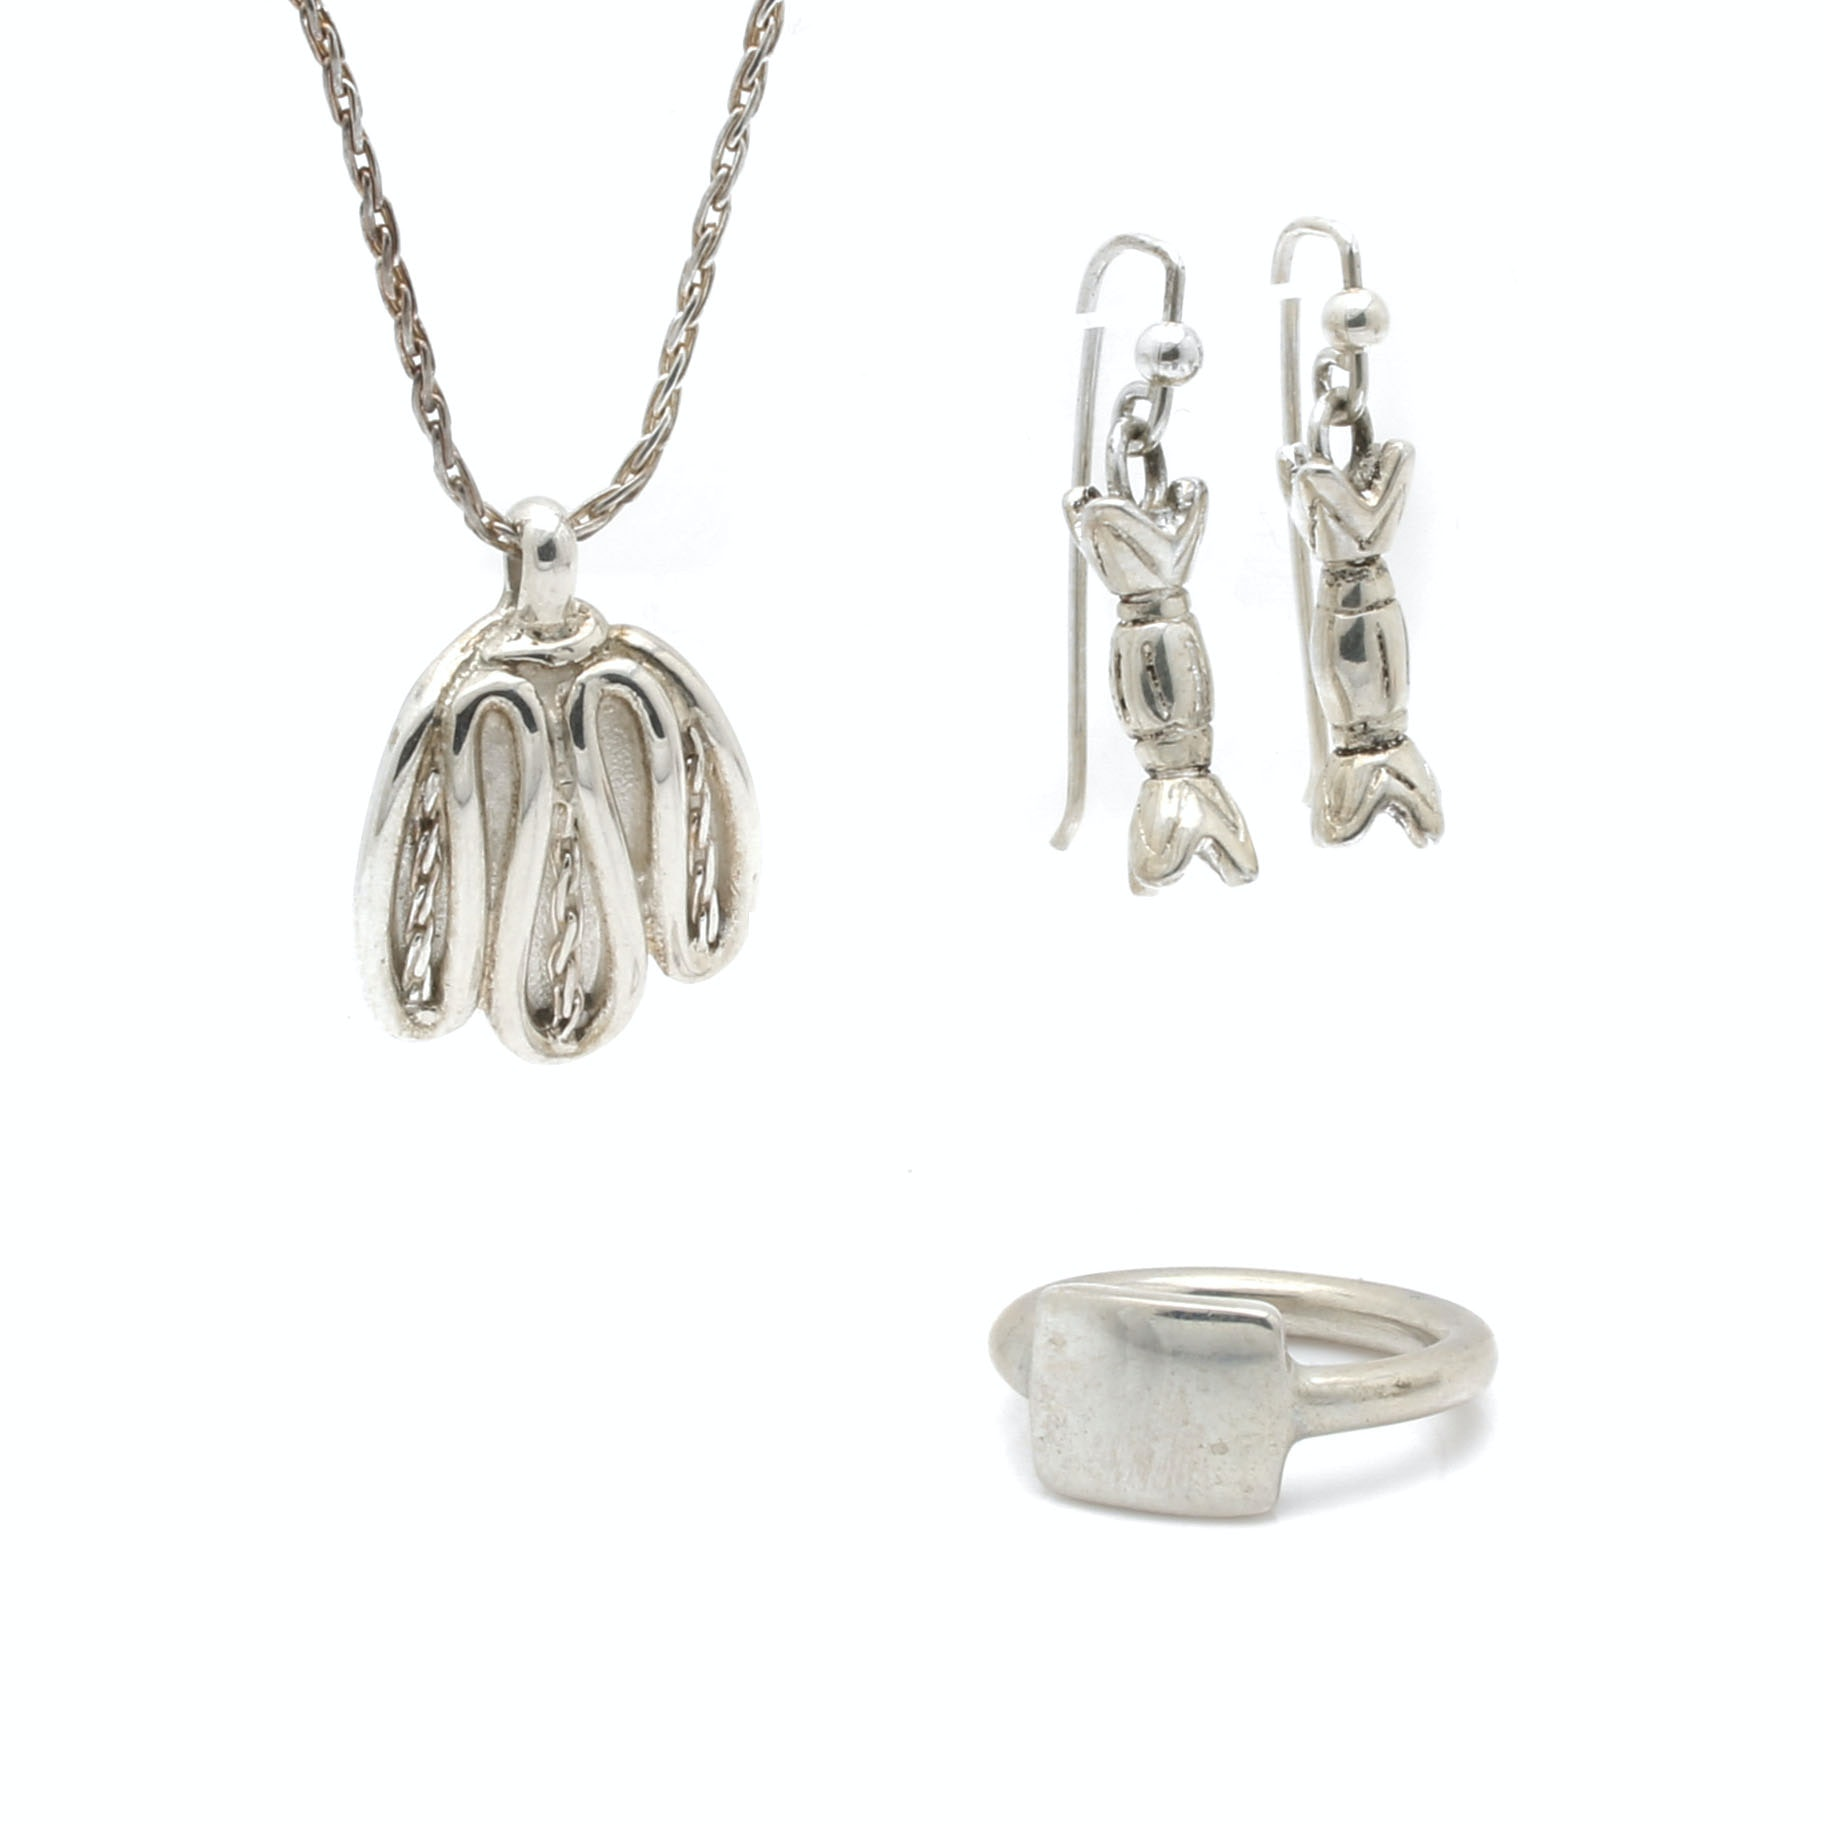 Selection of Bill Schiffer Sterling Silver Ring, Pendant Necklace and Earrings